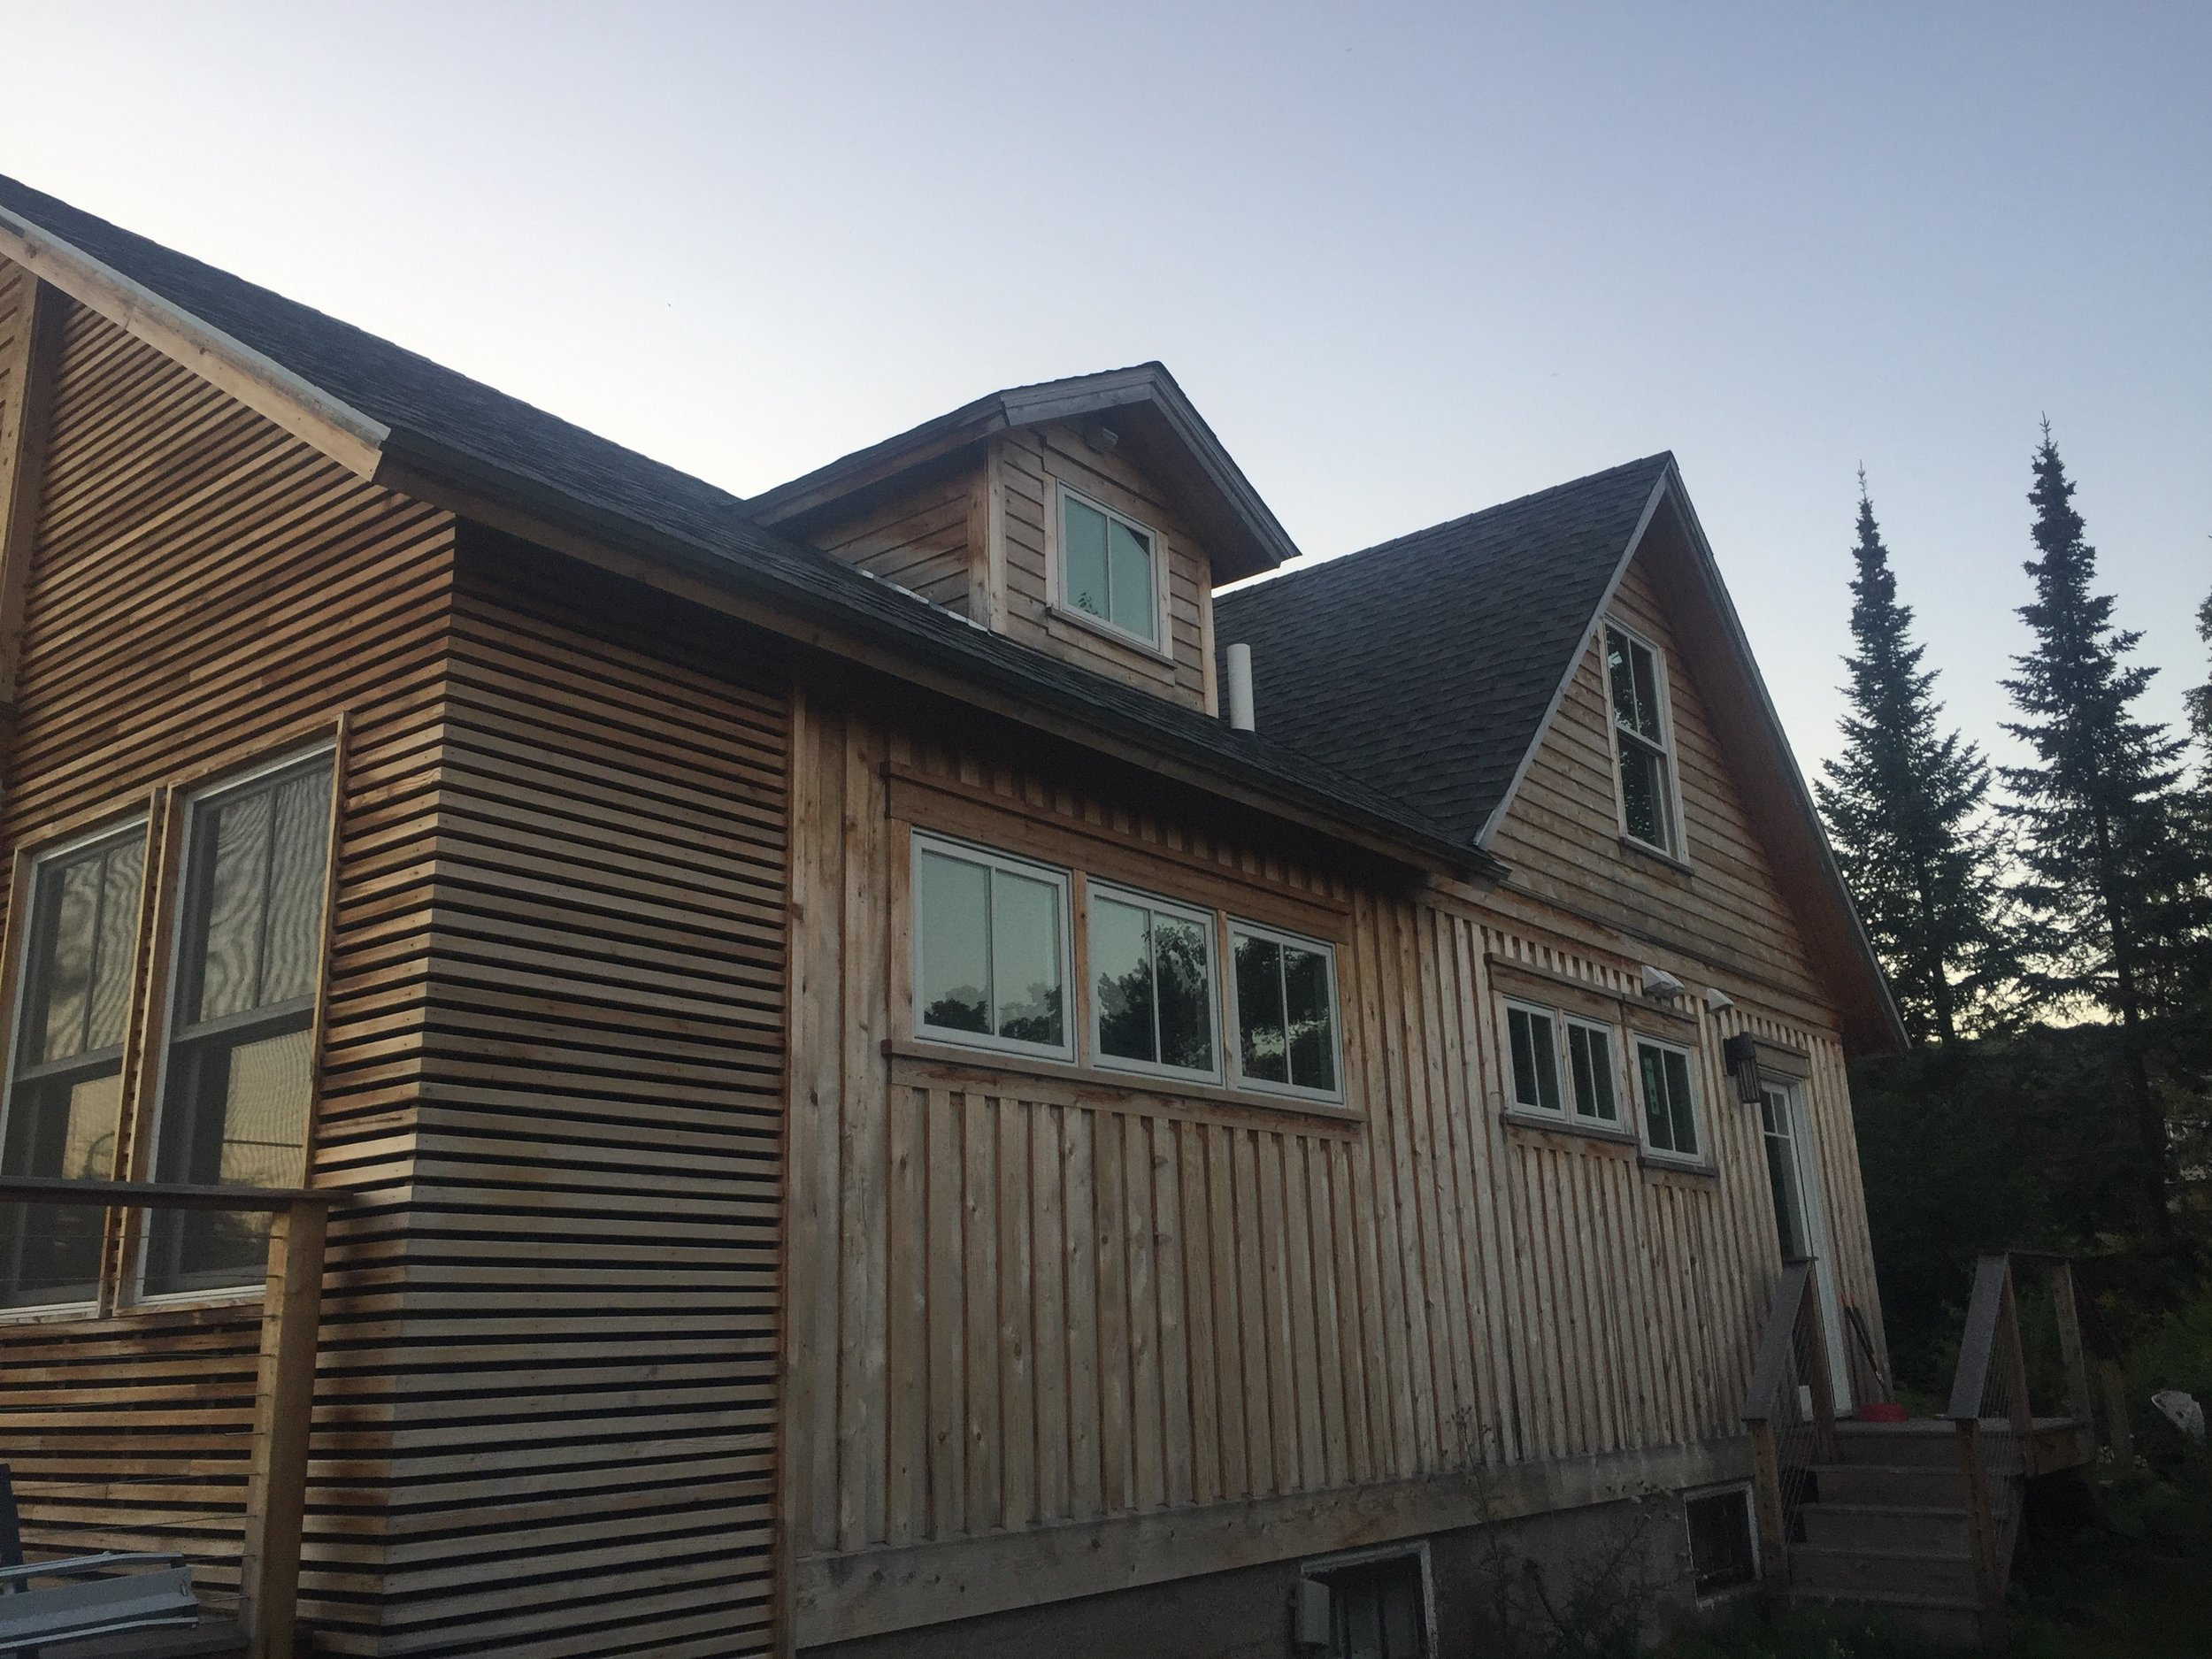 The rear of the house has a yard, sauna, and workshop. Plenty of room for a garden, garage, chickens, you name it!